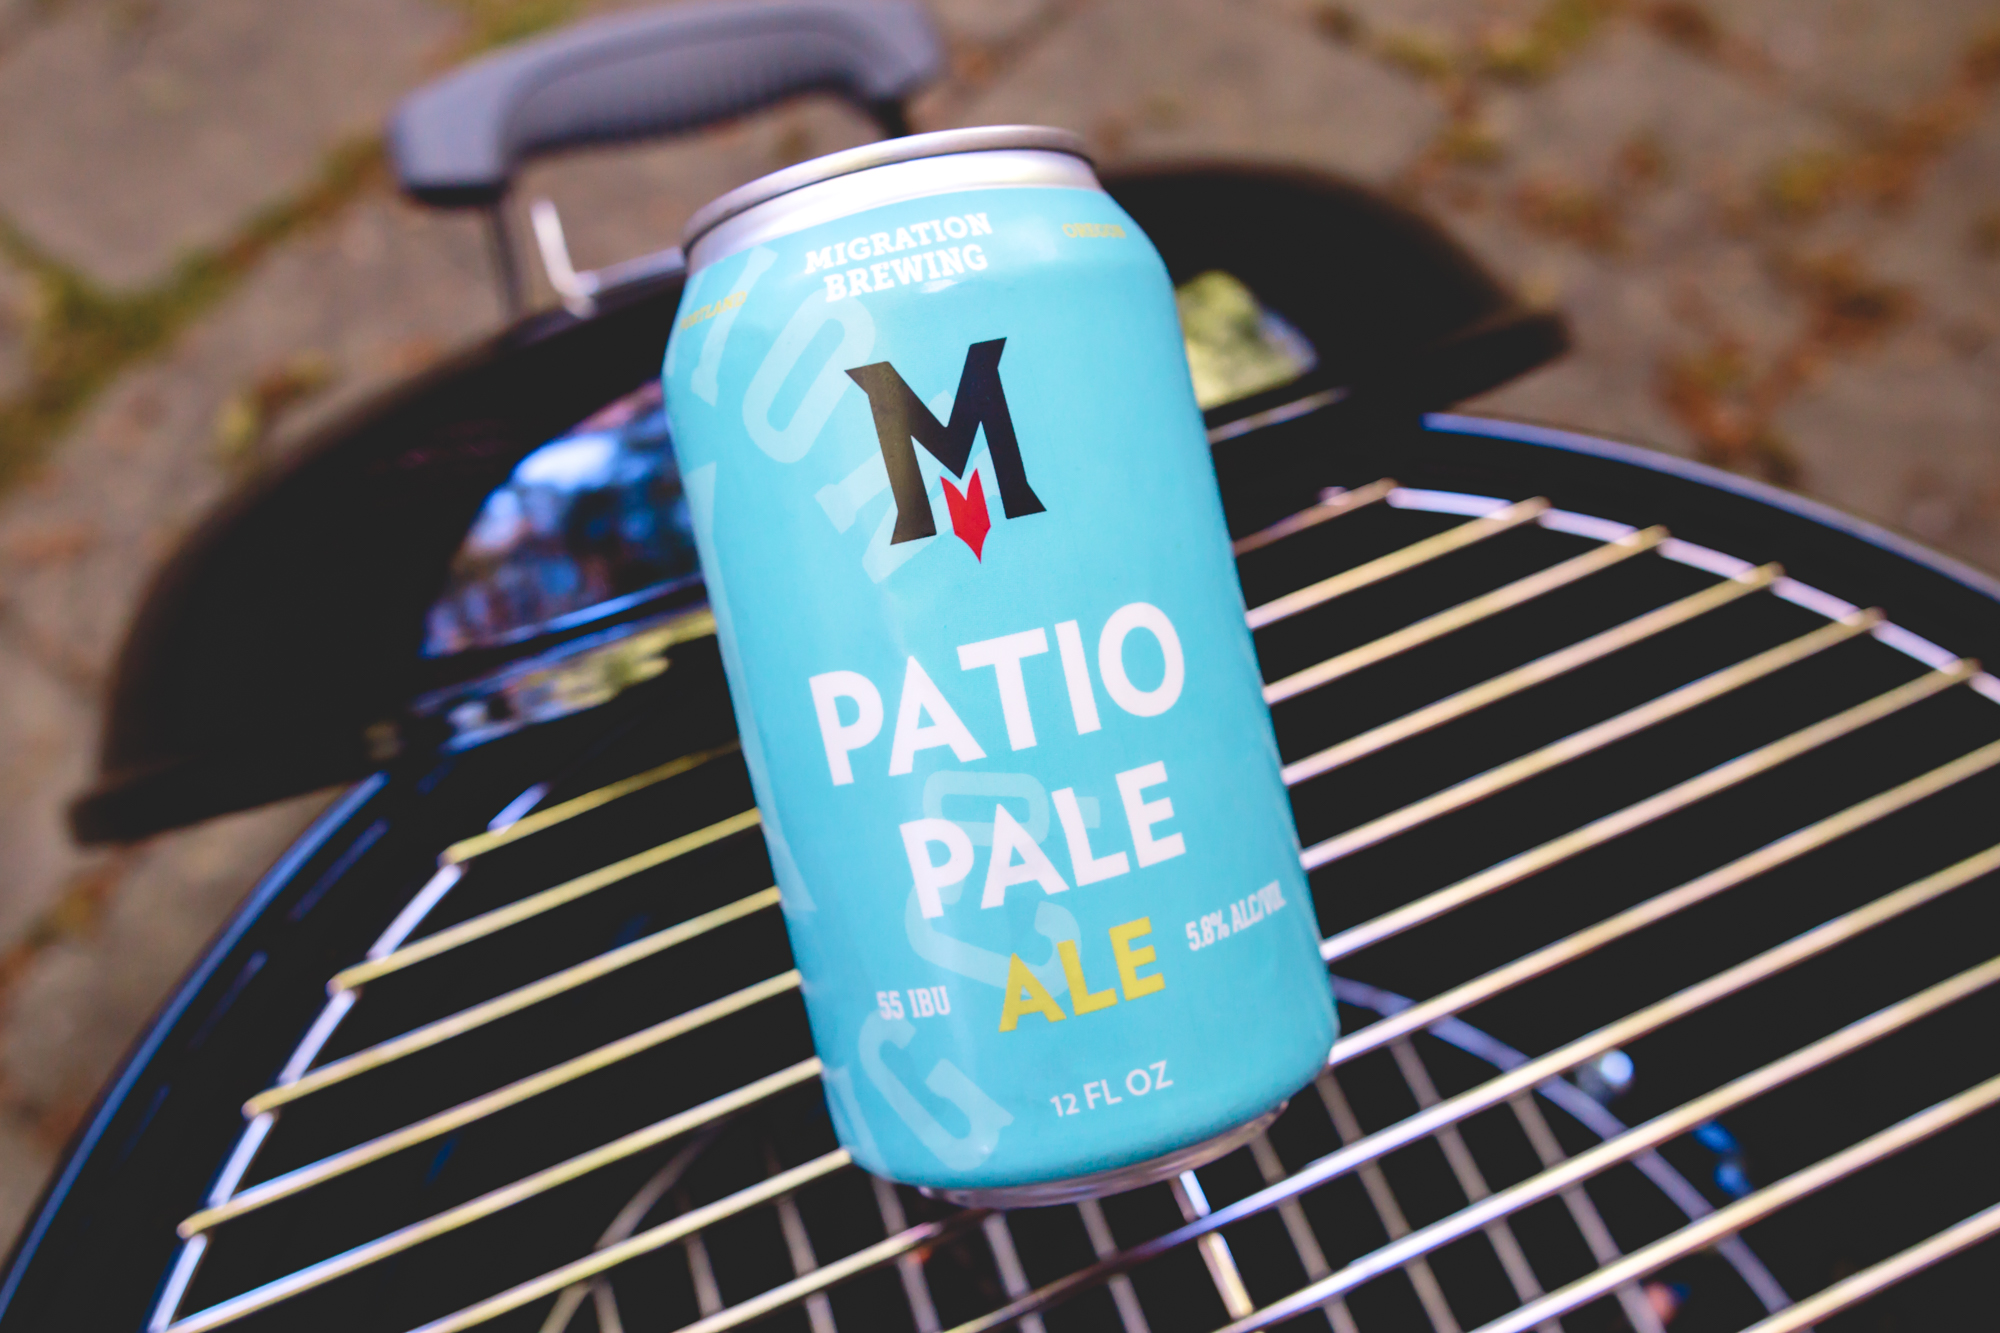 image of Patio Pale Ale courtesy of Migration Brewing